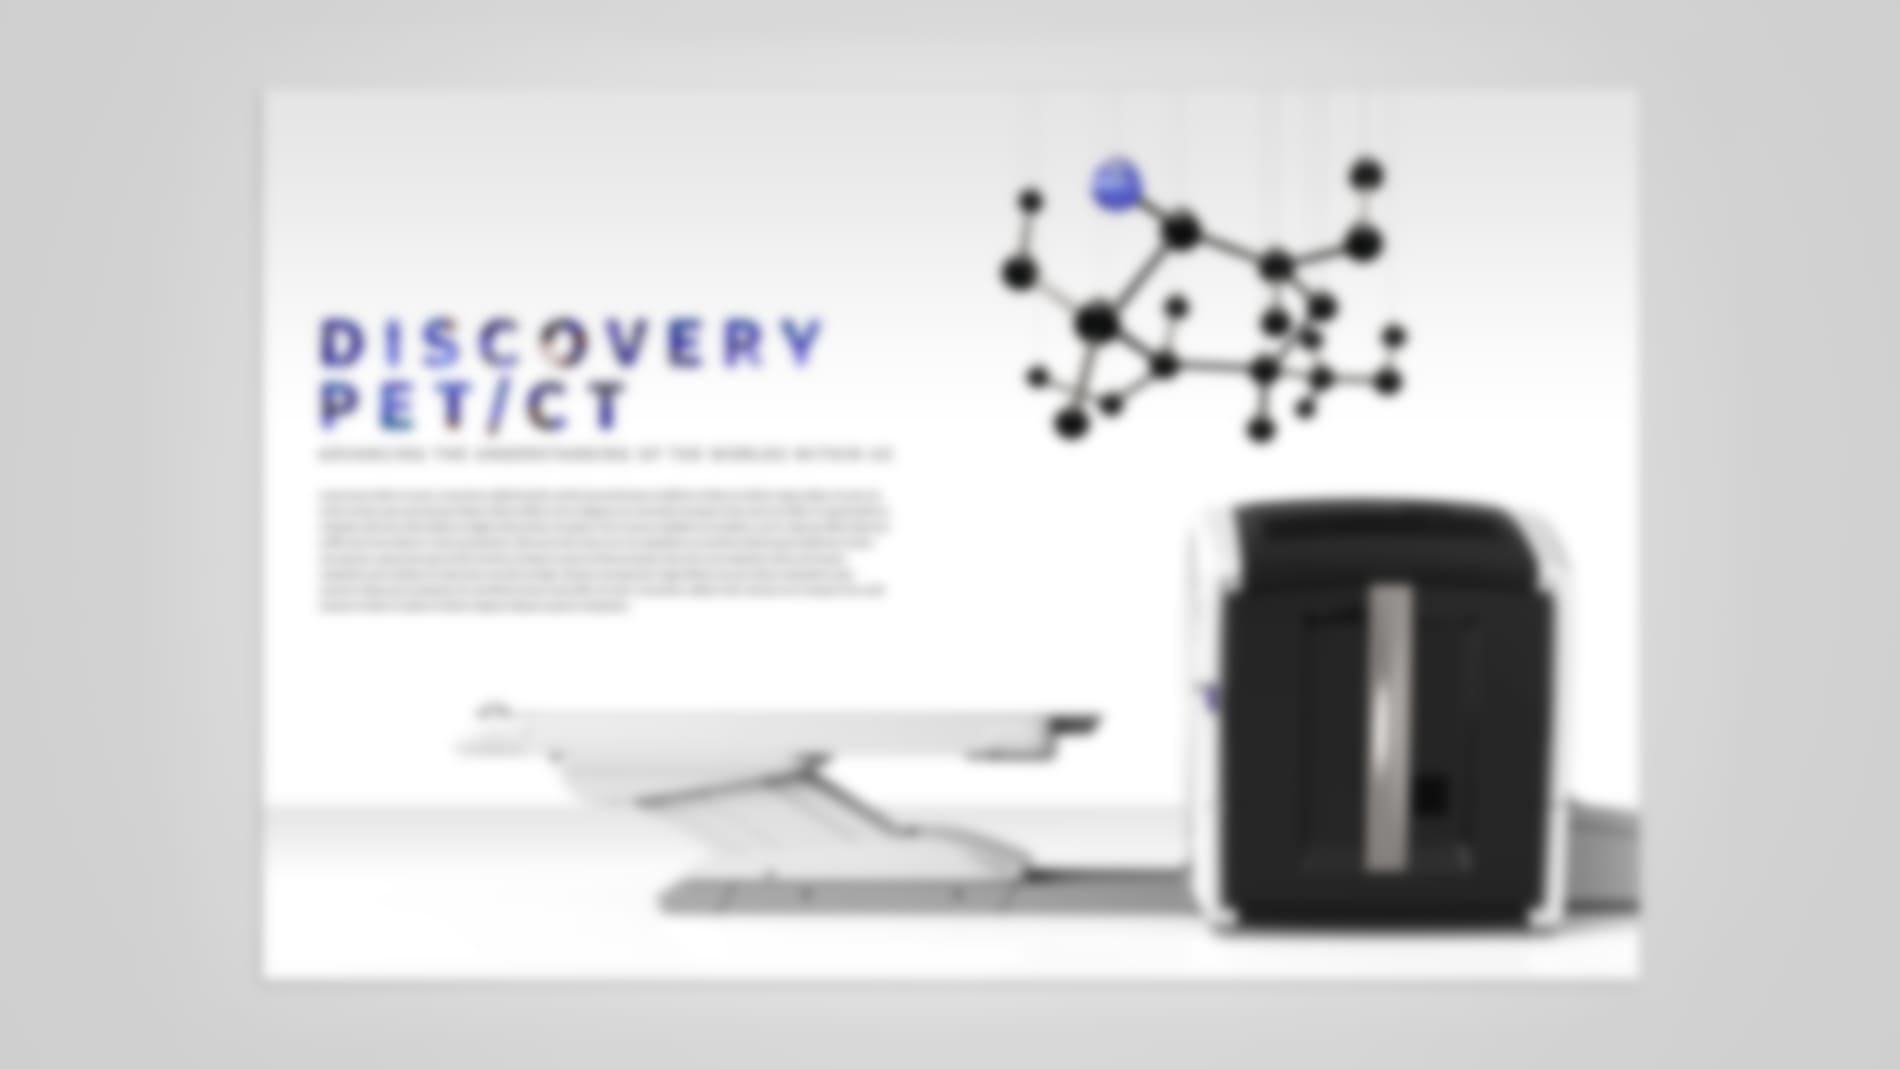 GE Discovery Branding Concepts